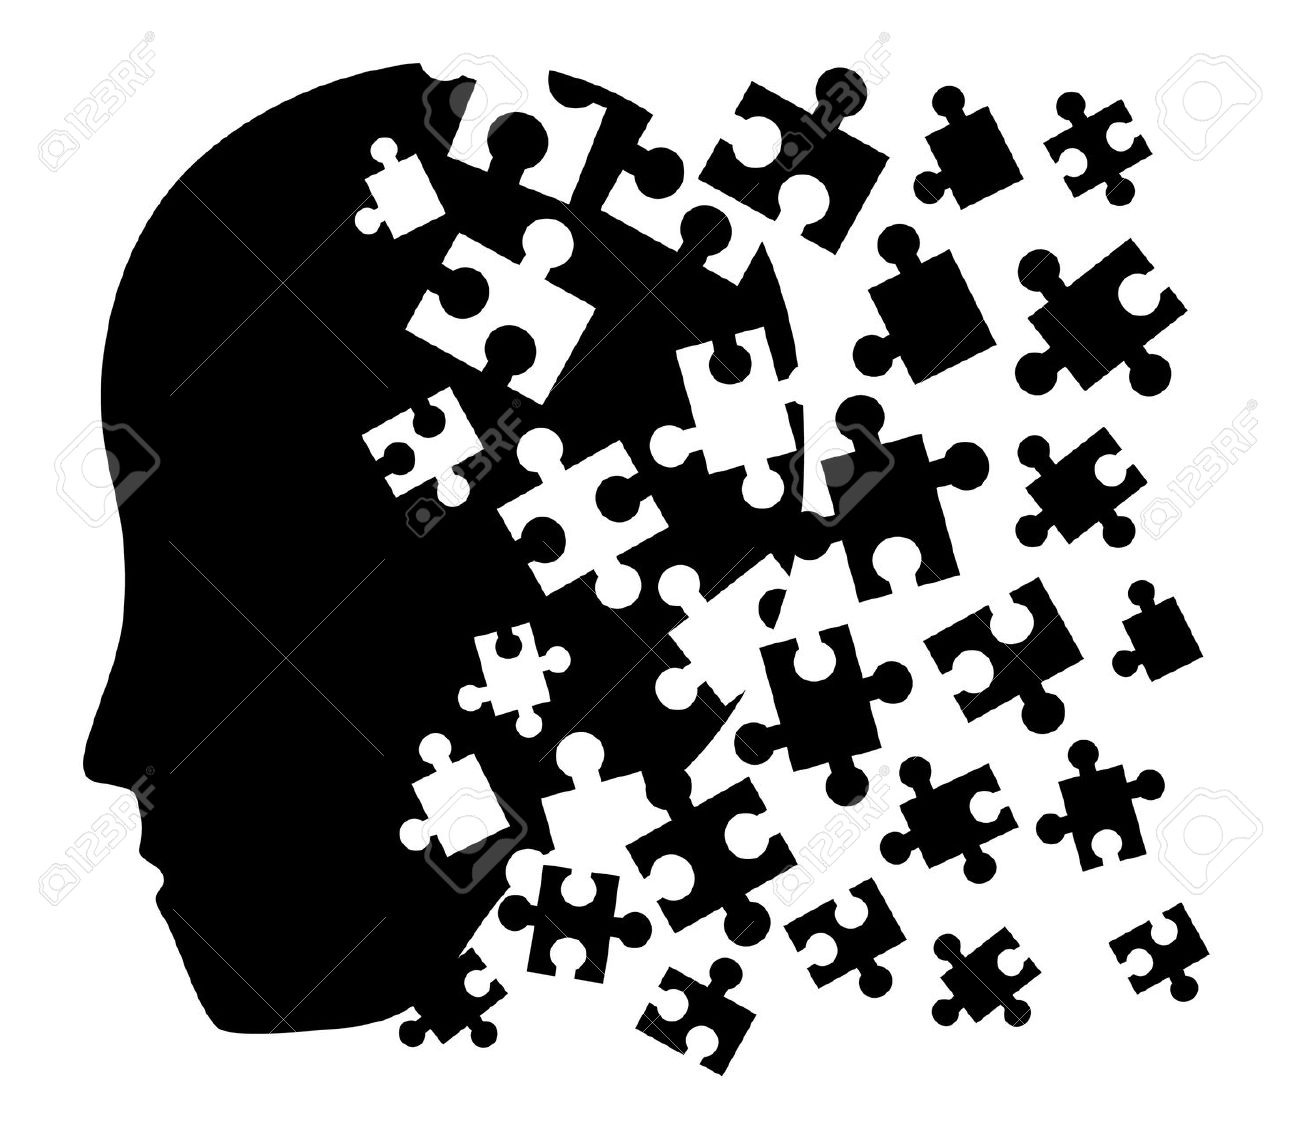 Puzzle clipart face. Psychology station